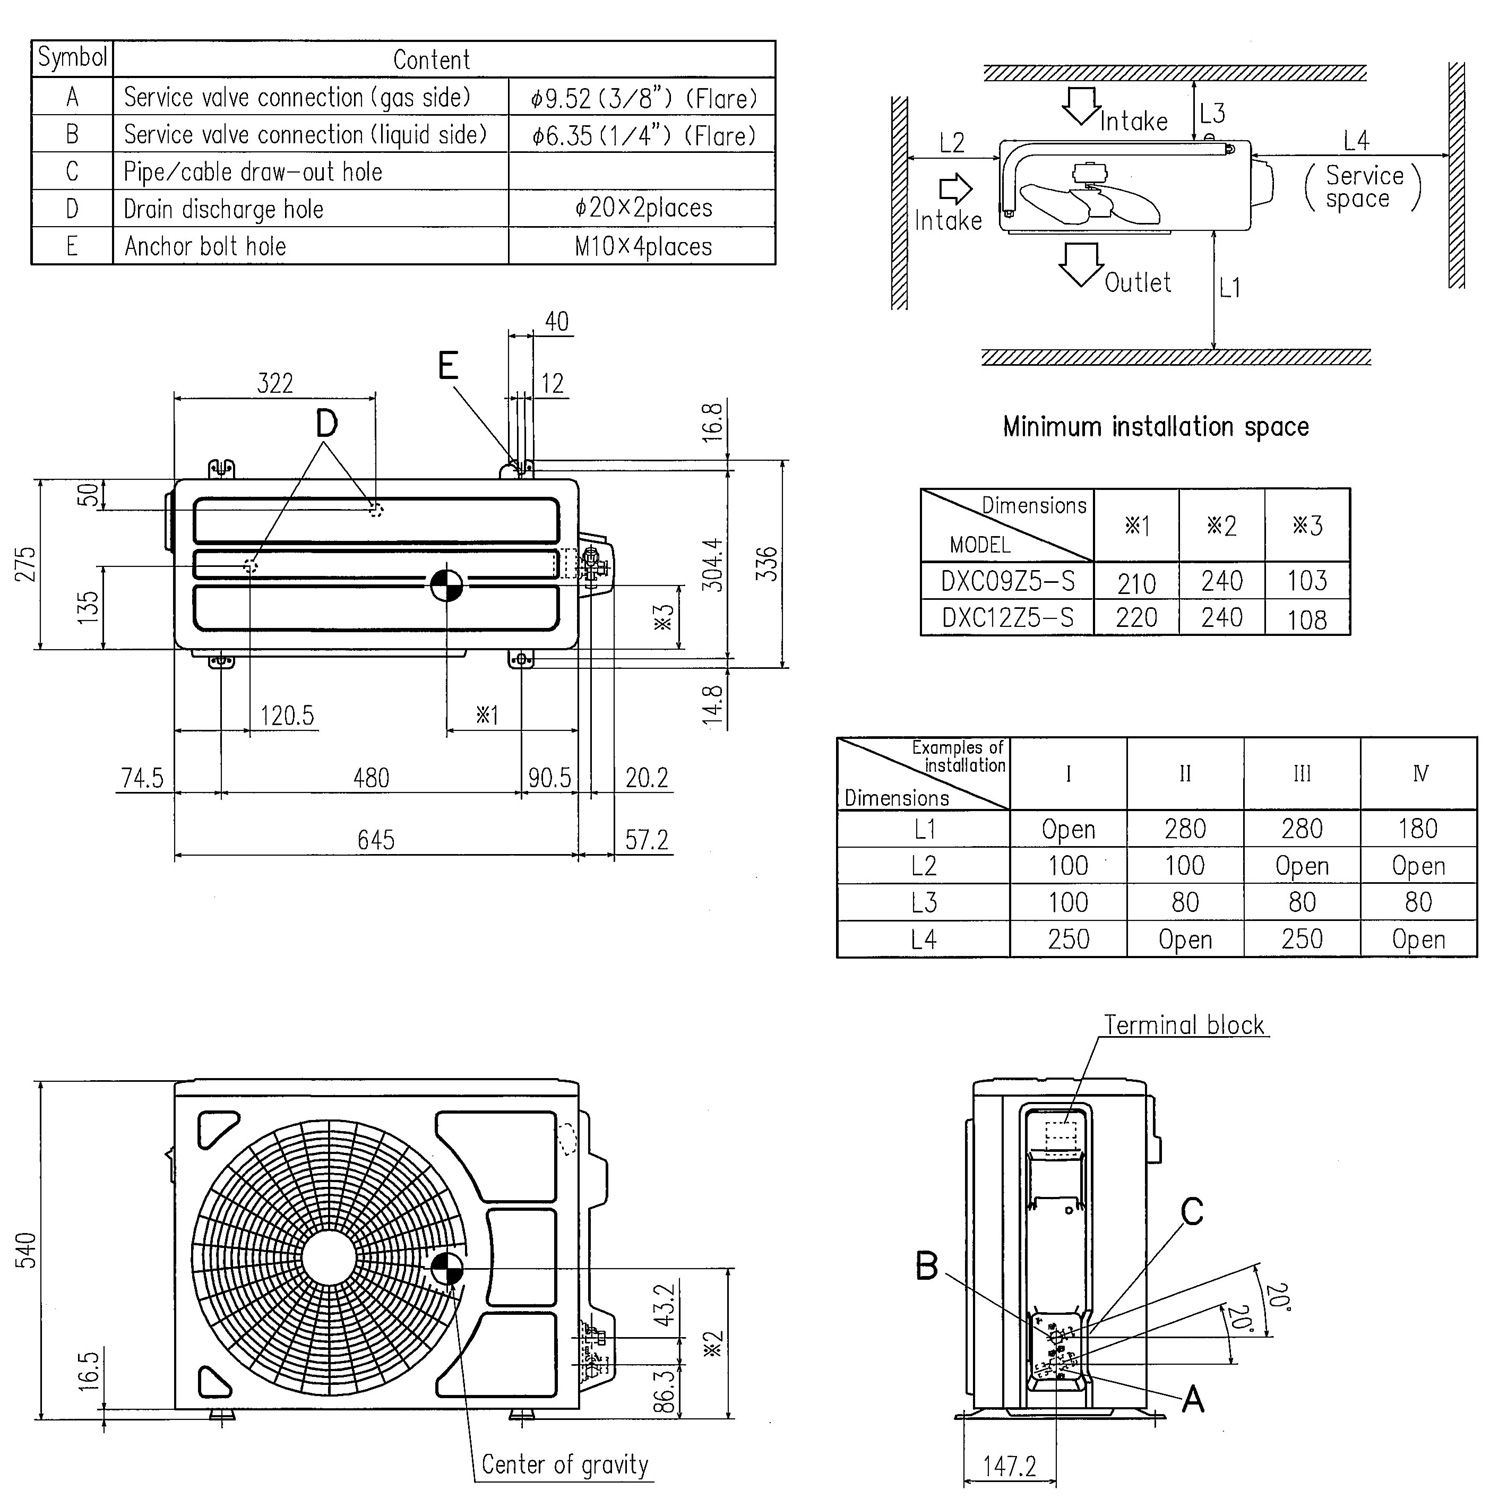 Mitsubishi Heavy Industries Air Conditioning Wiring Diagram Alternator Wiring  Diagram Air Conditioner Wiring Diagram 1994 Ford L9000